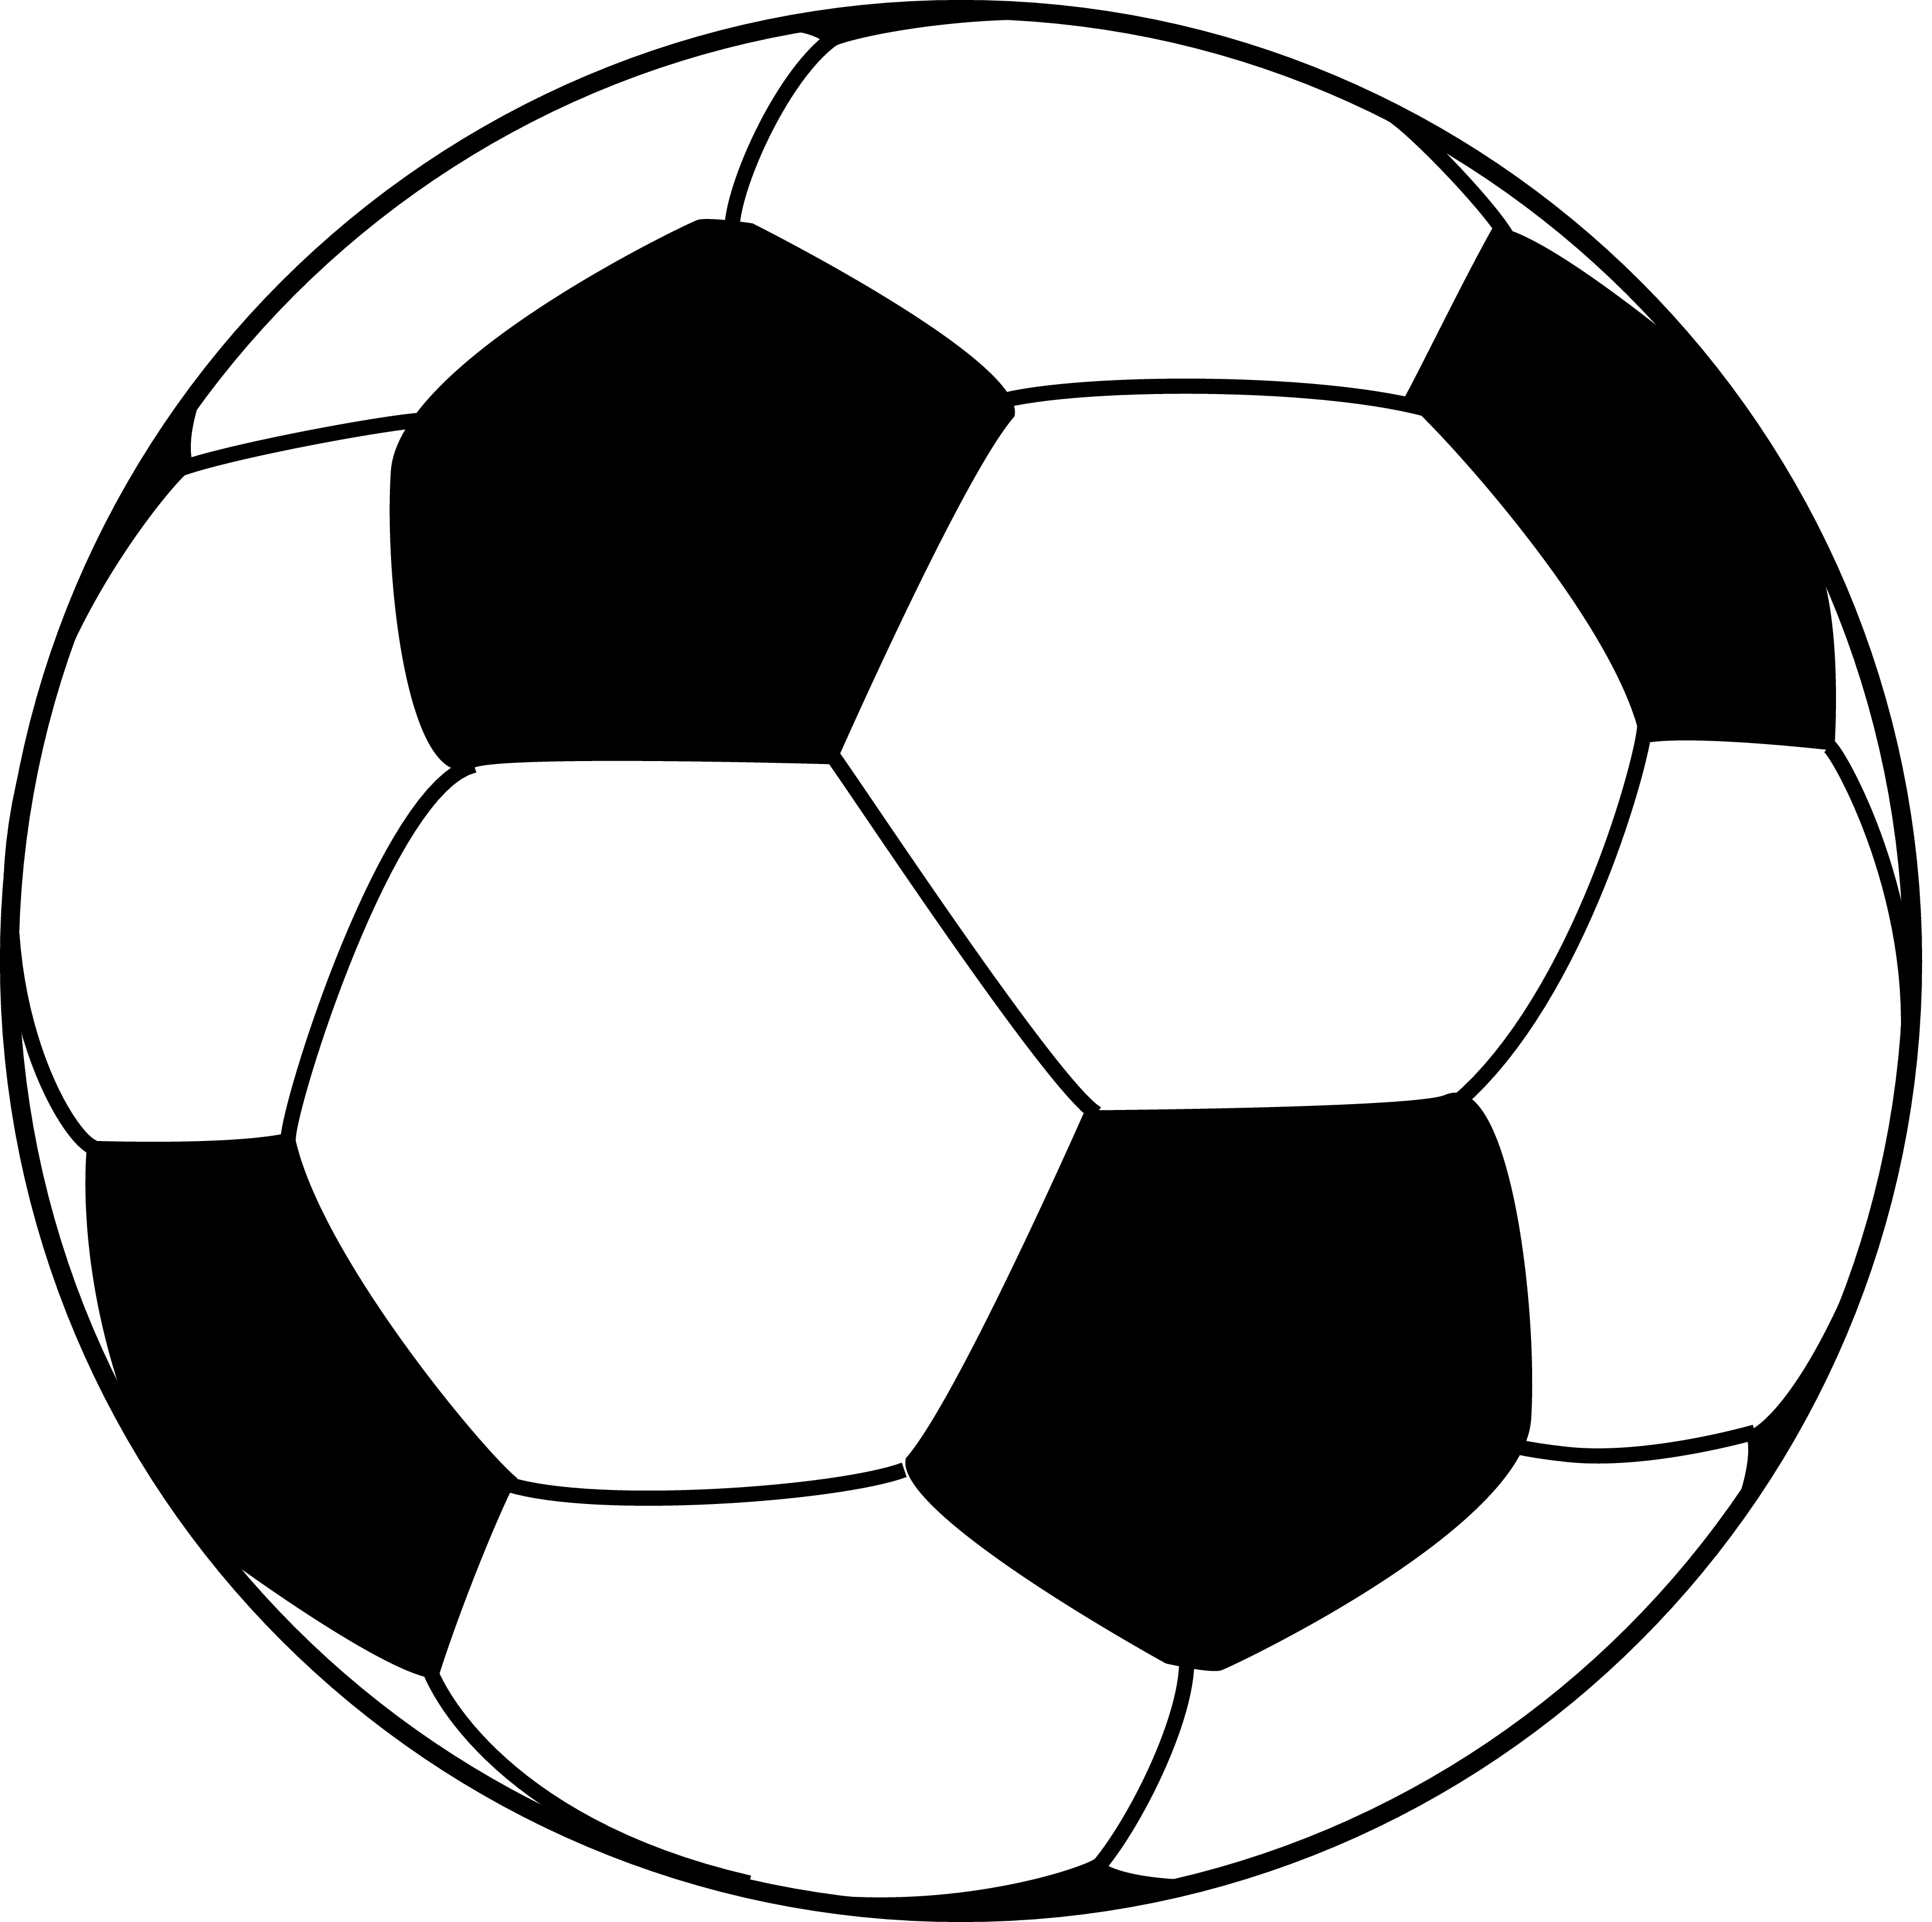 soccer ball pattern template soccer ball pattern vector cricut rh pinterest com soccer ball vector file soccer ball vector art